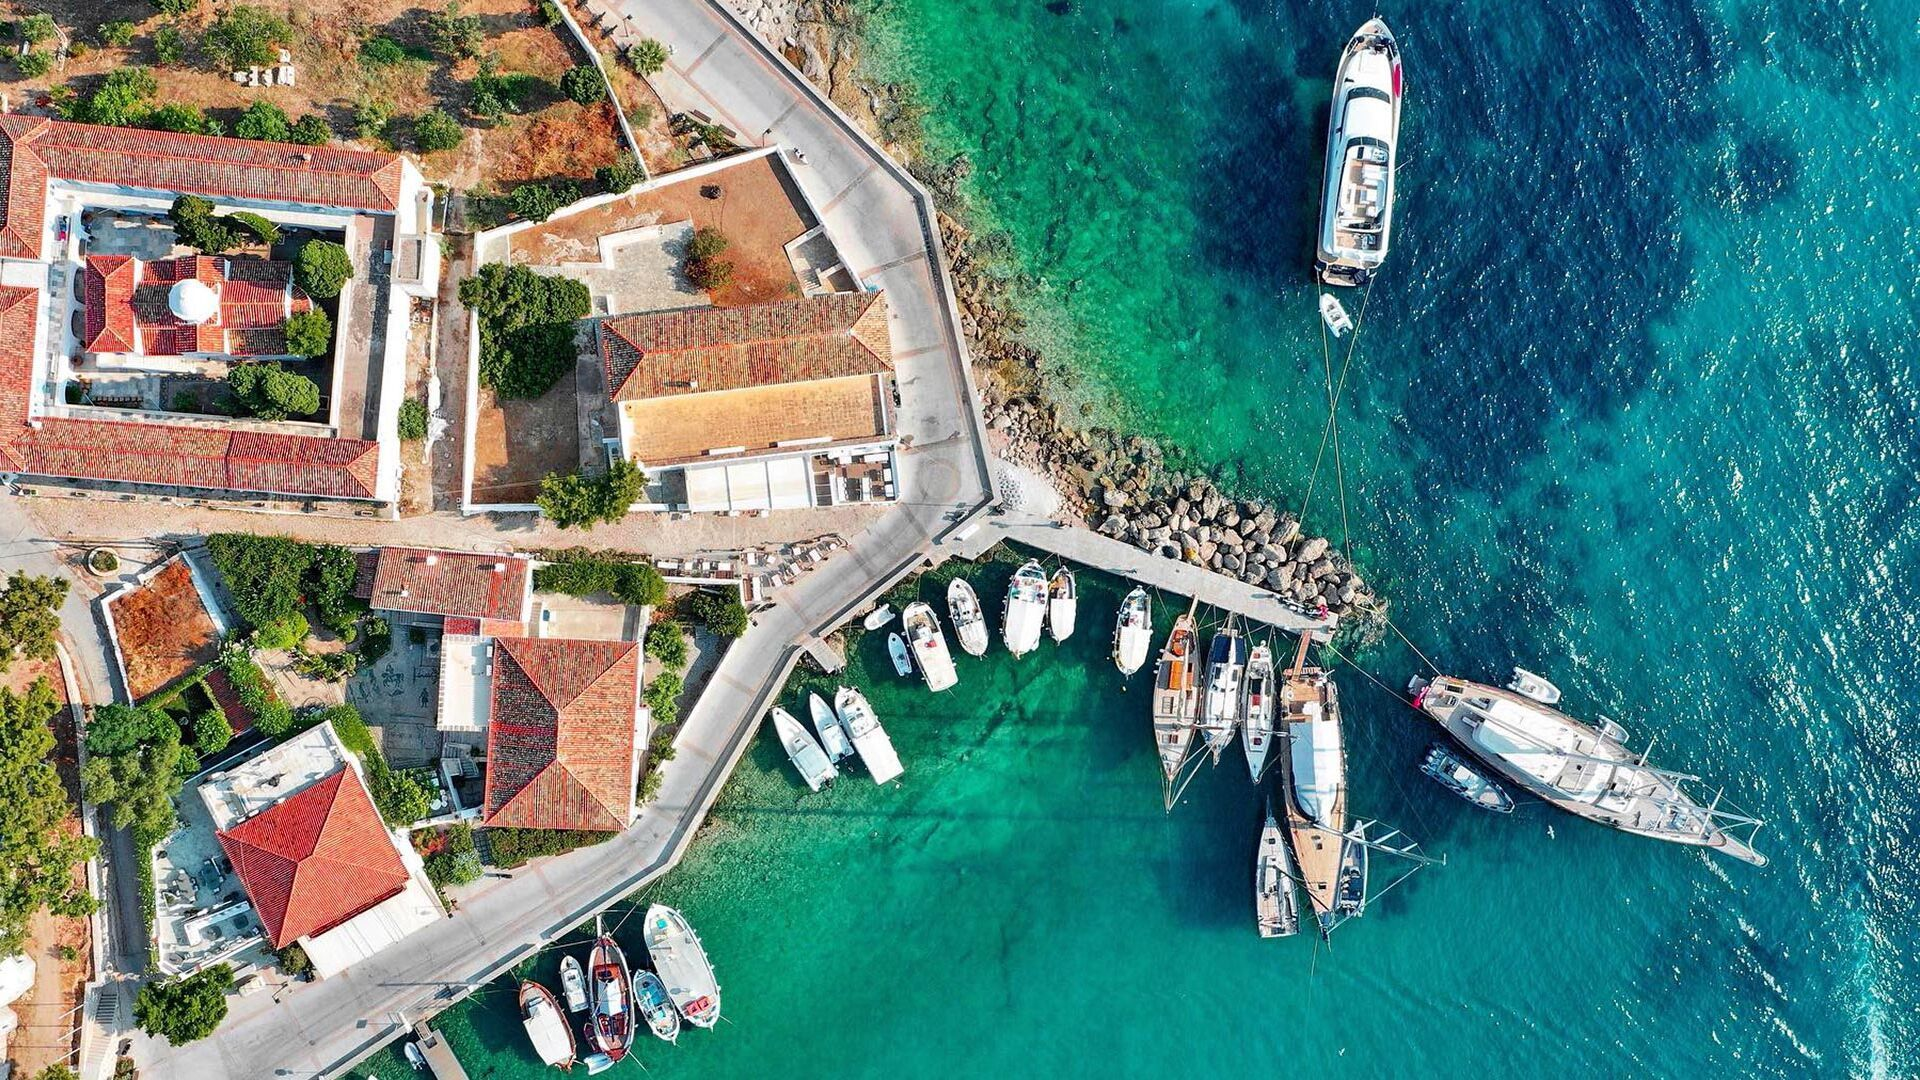 Sailing boats in Spetses from above